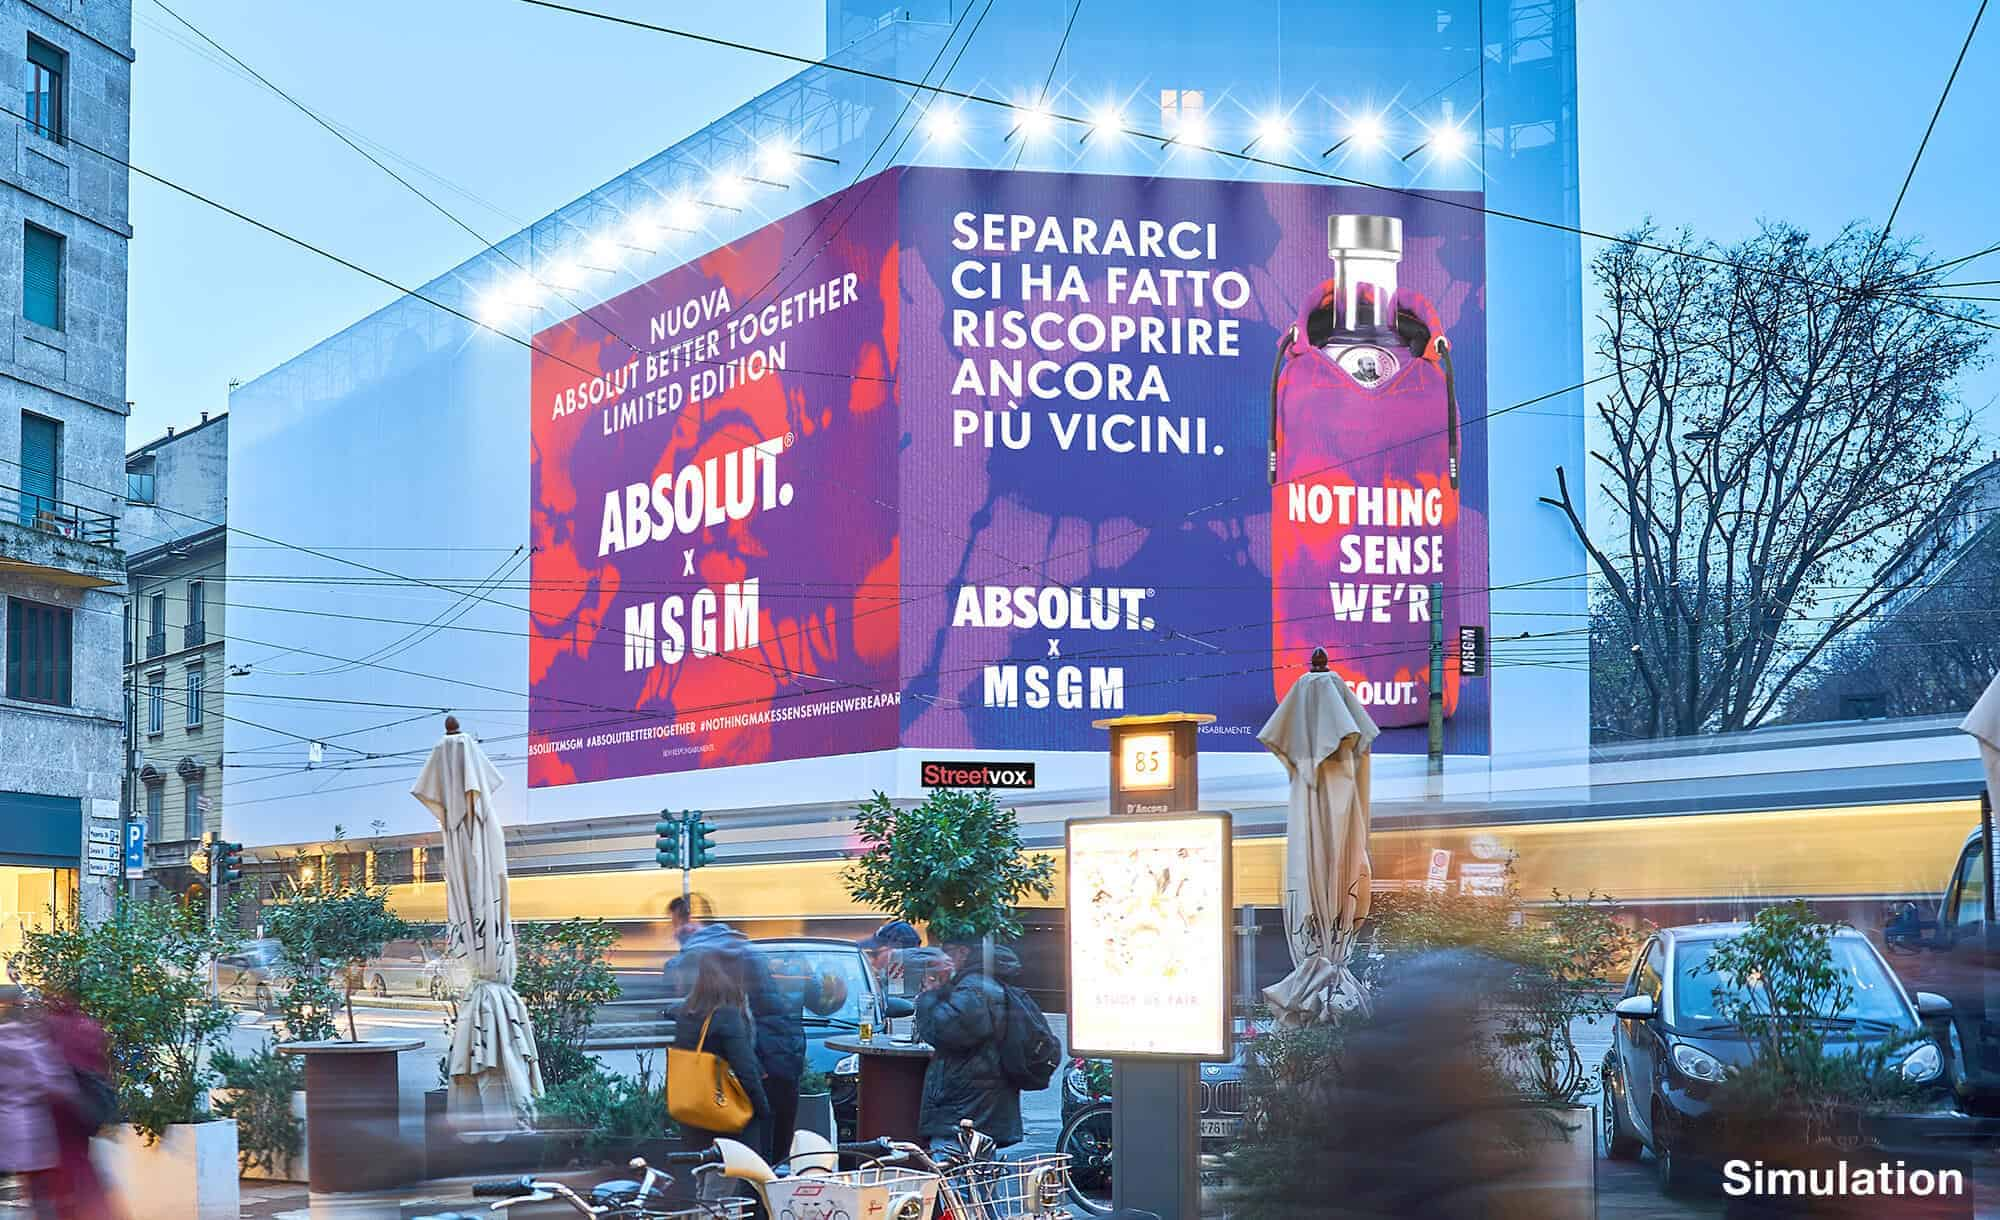 Maxi Affisione a Milano in Corso Magenta 42 con Absolut e MSGM (Beverage and Fashion)